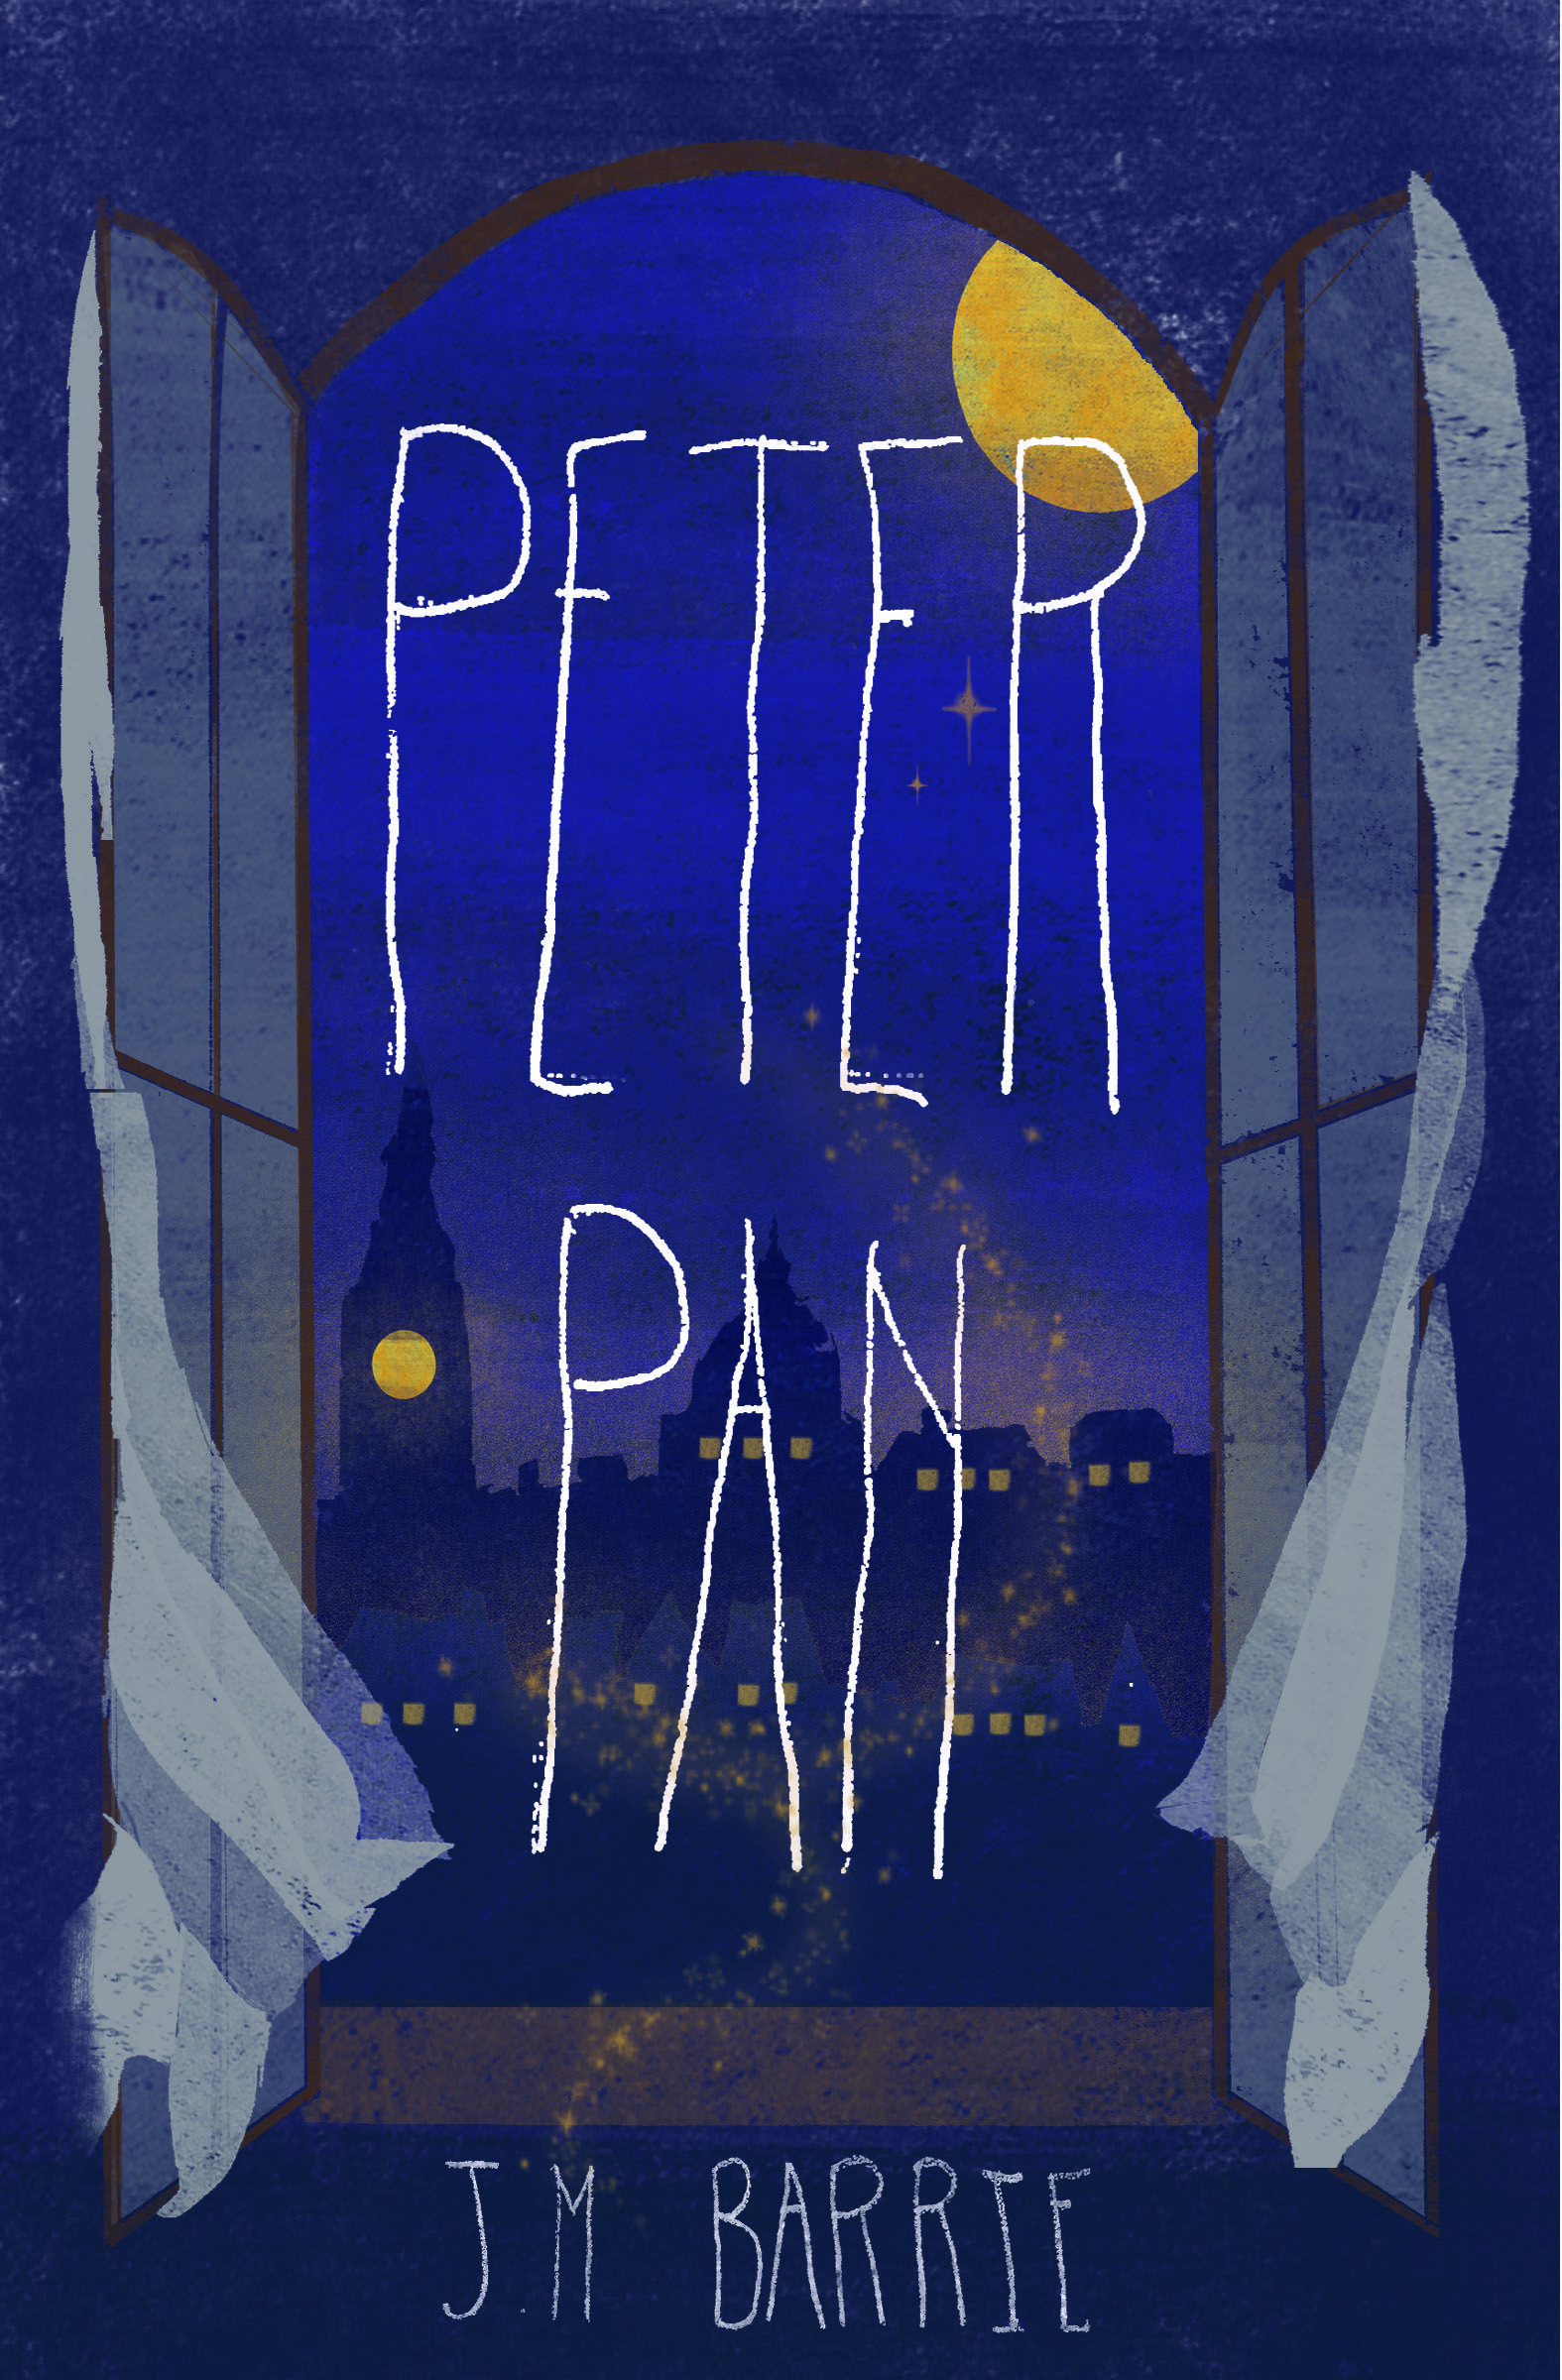 Peter Pan Libro Original Pin De Sarahyt Canela En Books Pinterest Libros Peter